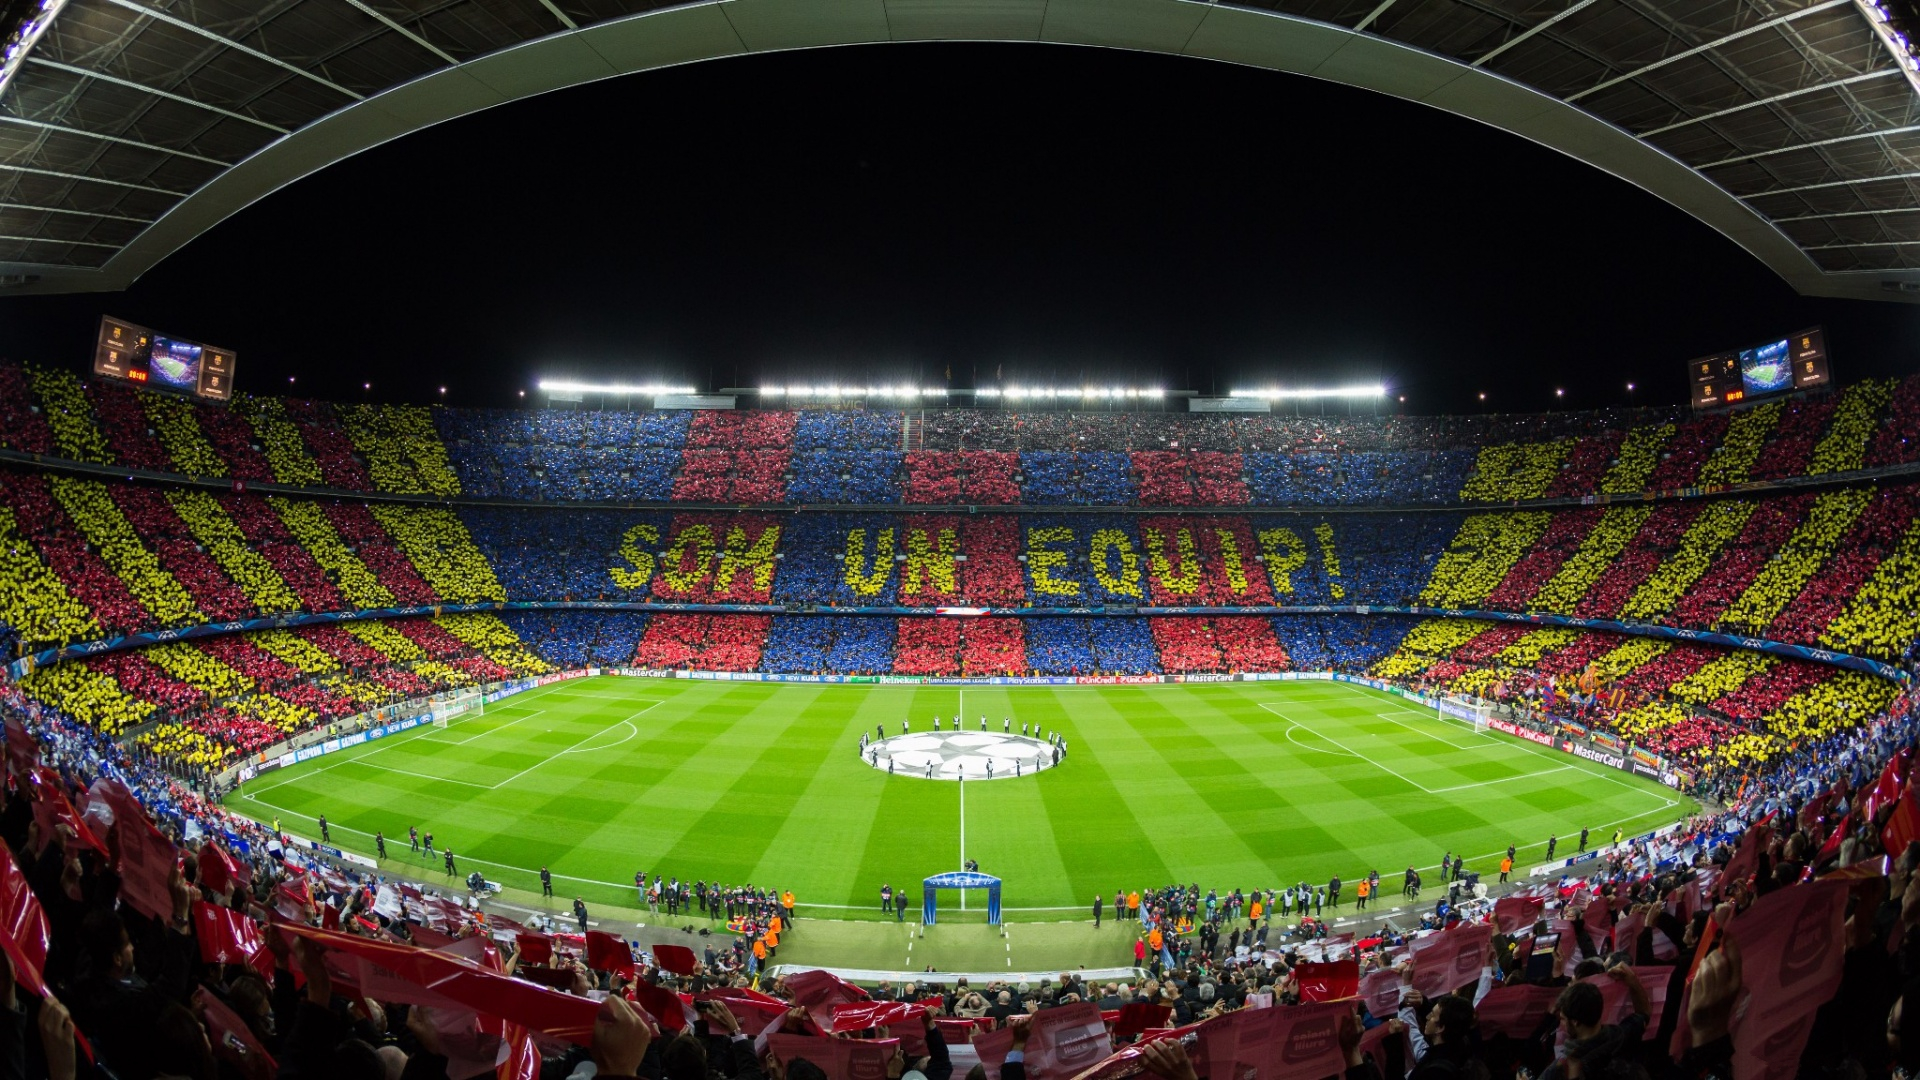 Quotes Wallpaper Hd For Desktop Widescreen Camp Nou Stadium Wallpaper Download Free Pixelstalk Net